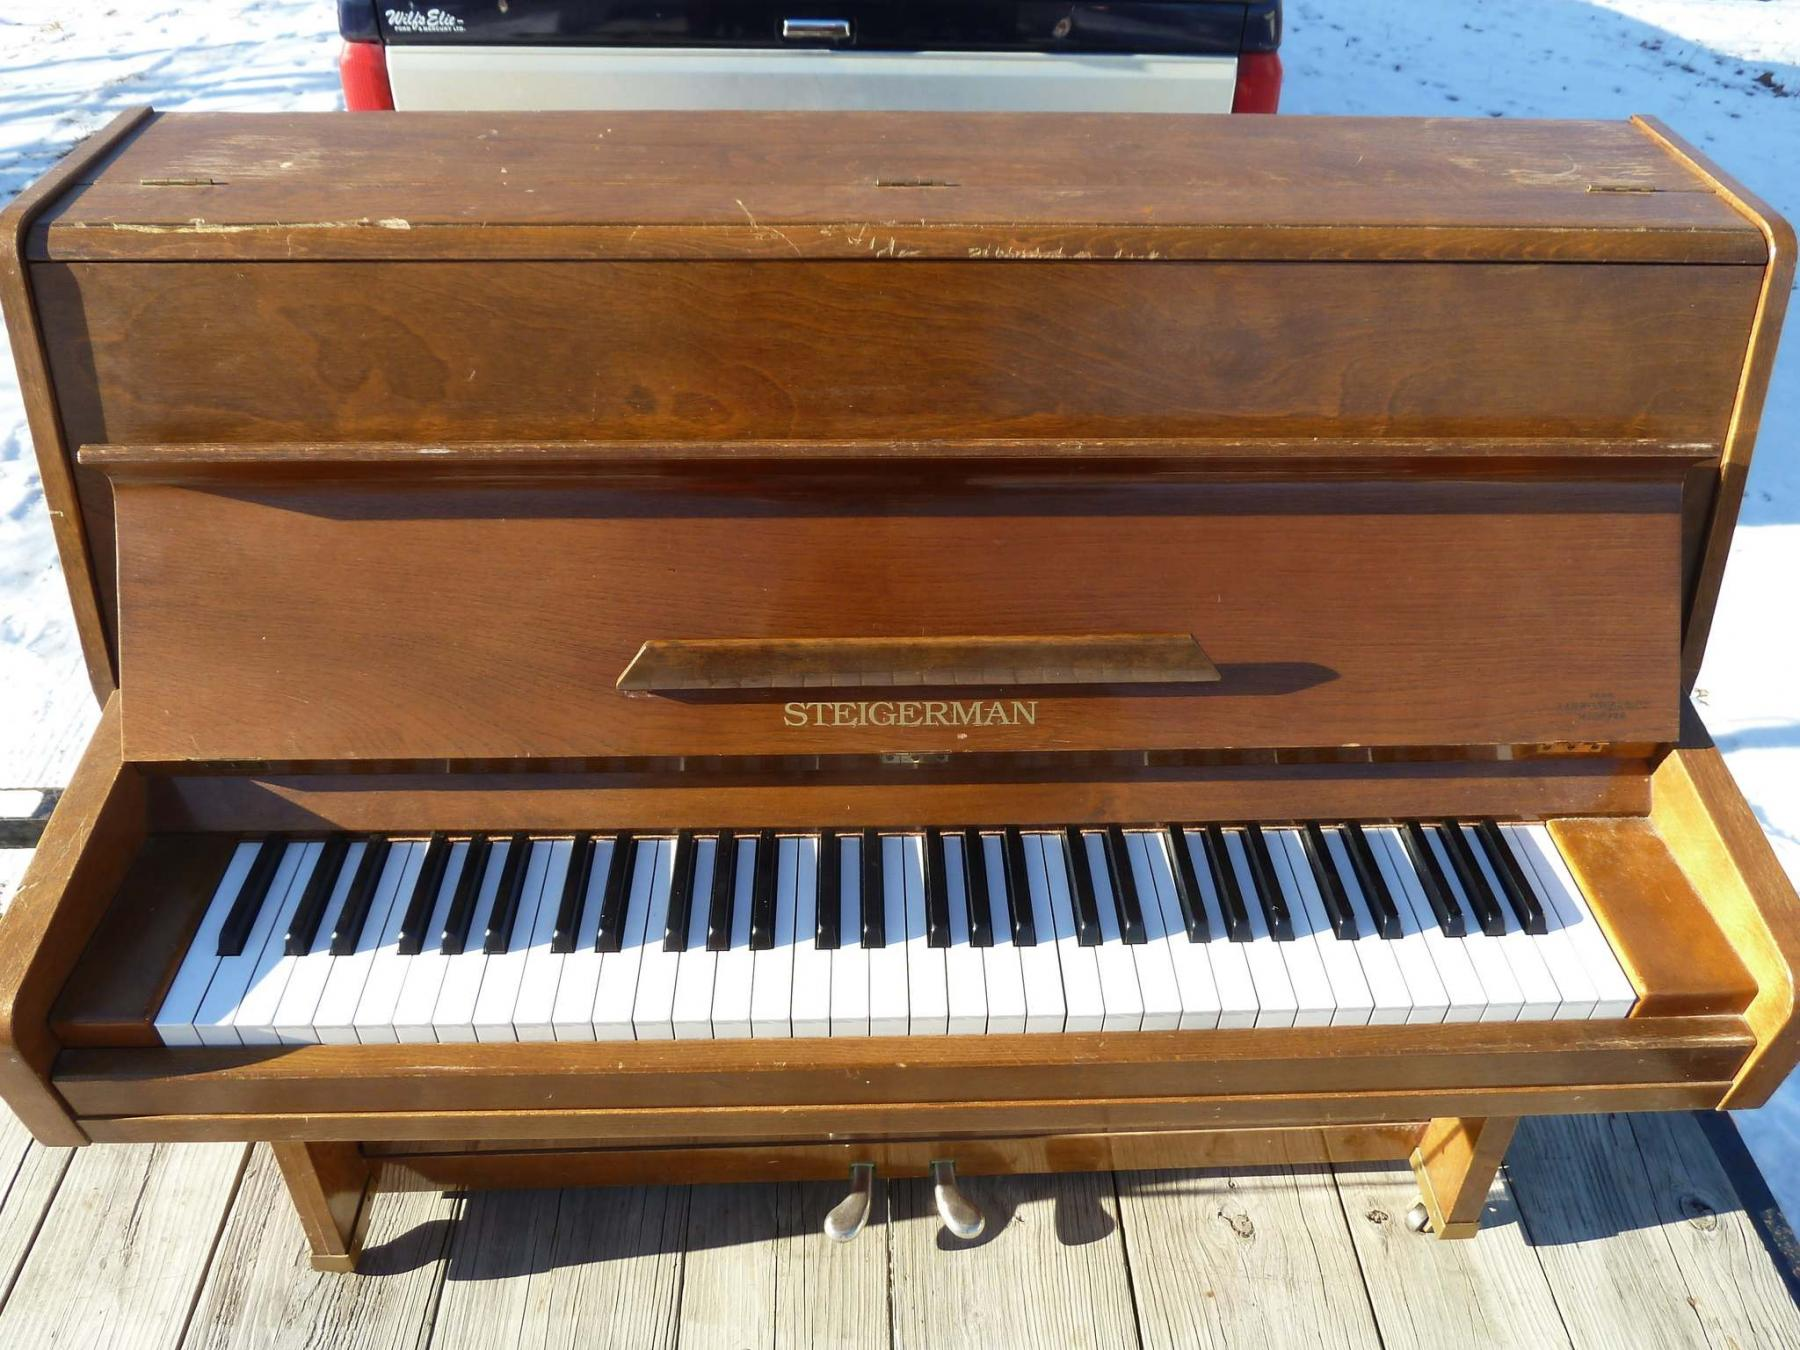 <p>Mustard has saved another piano, this small Steigerman model was destined for the landfill. </p>